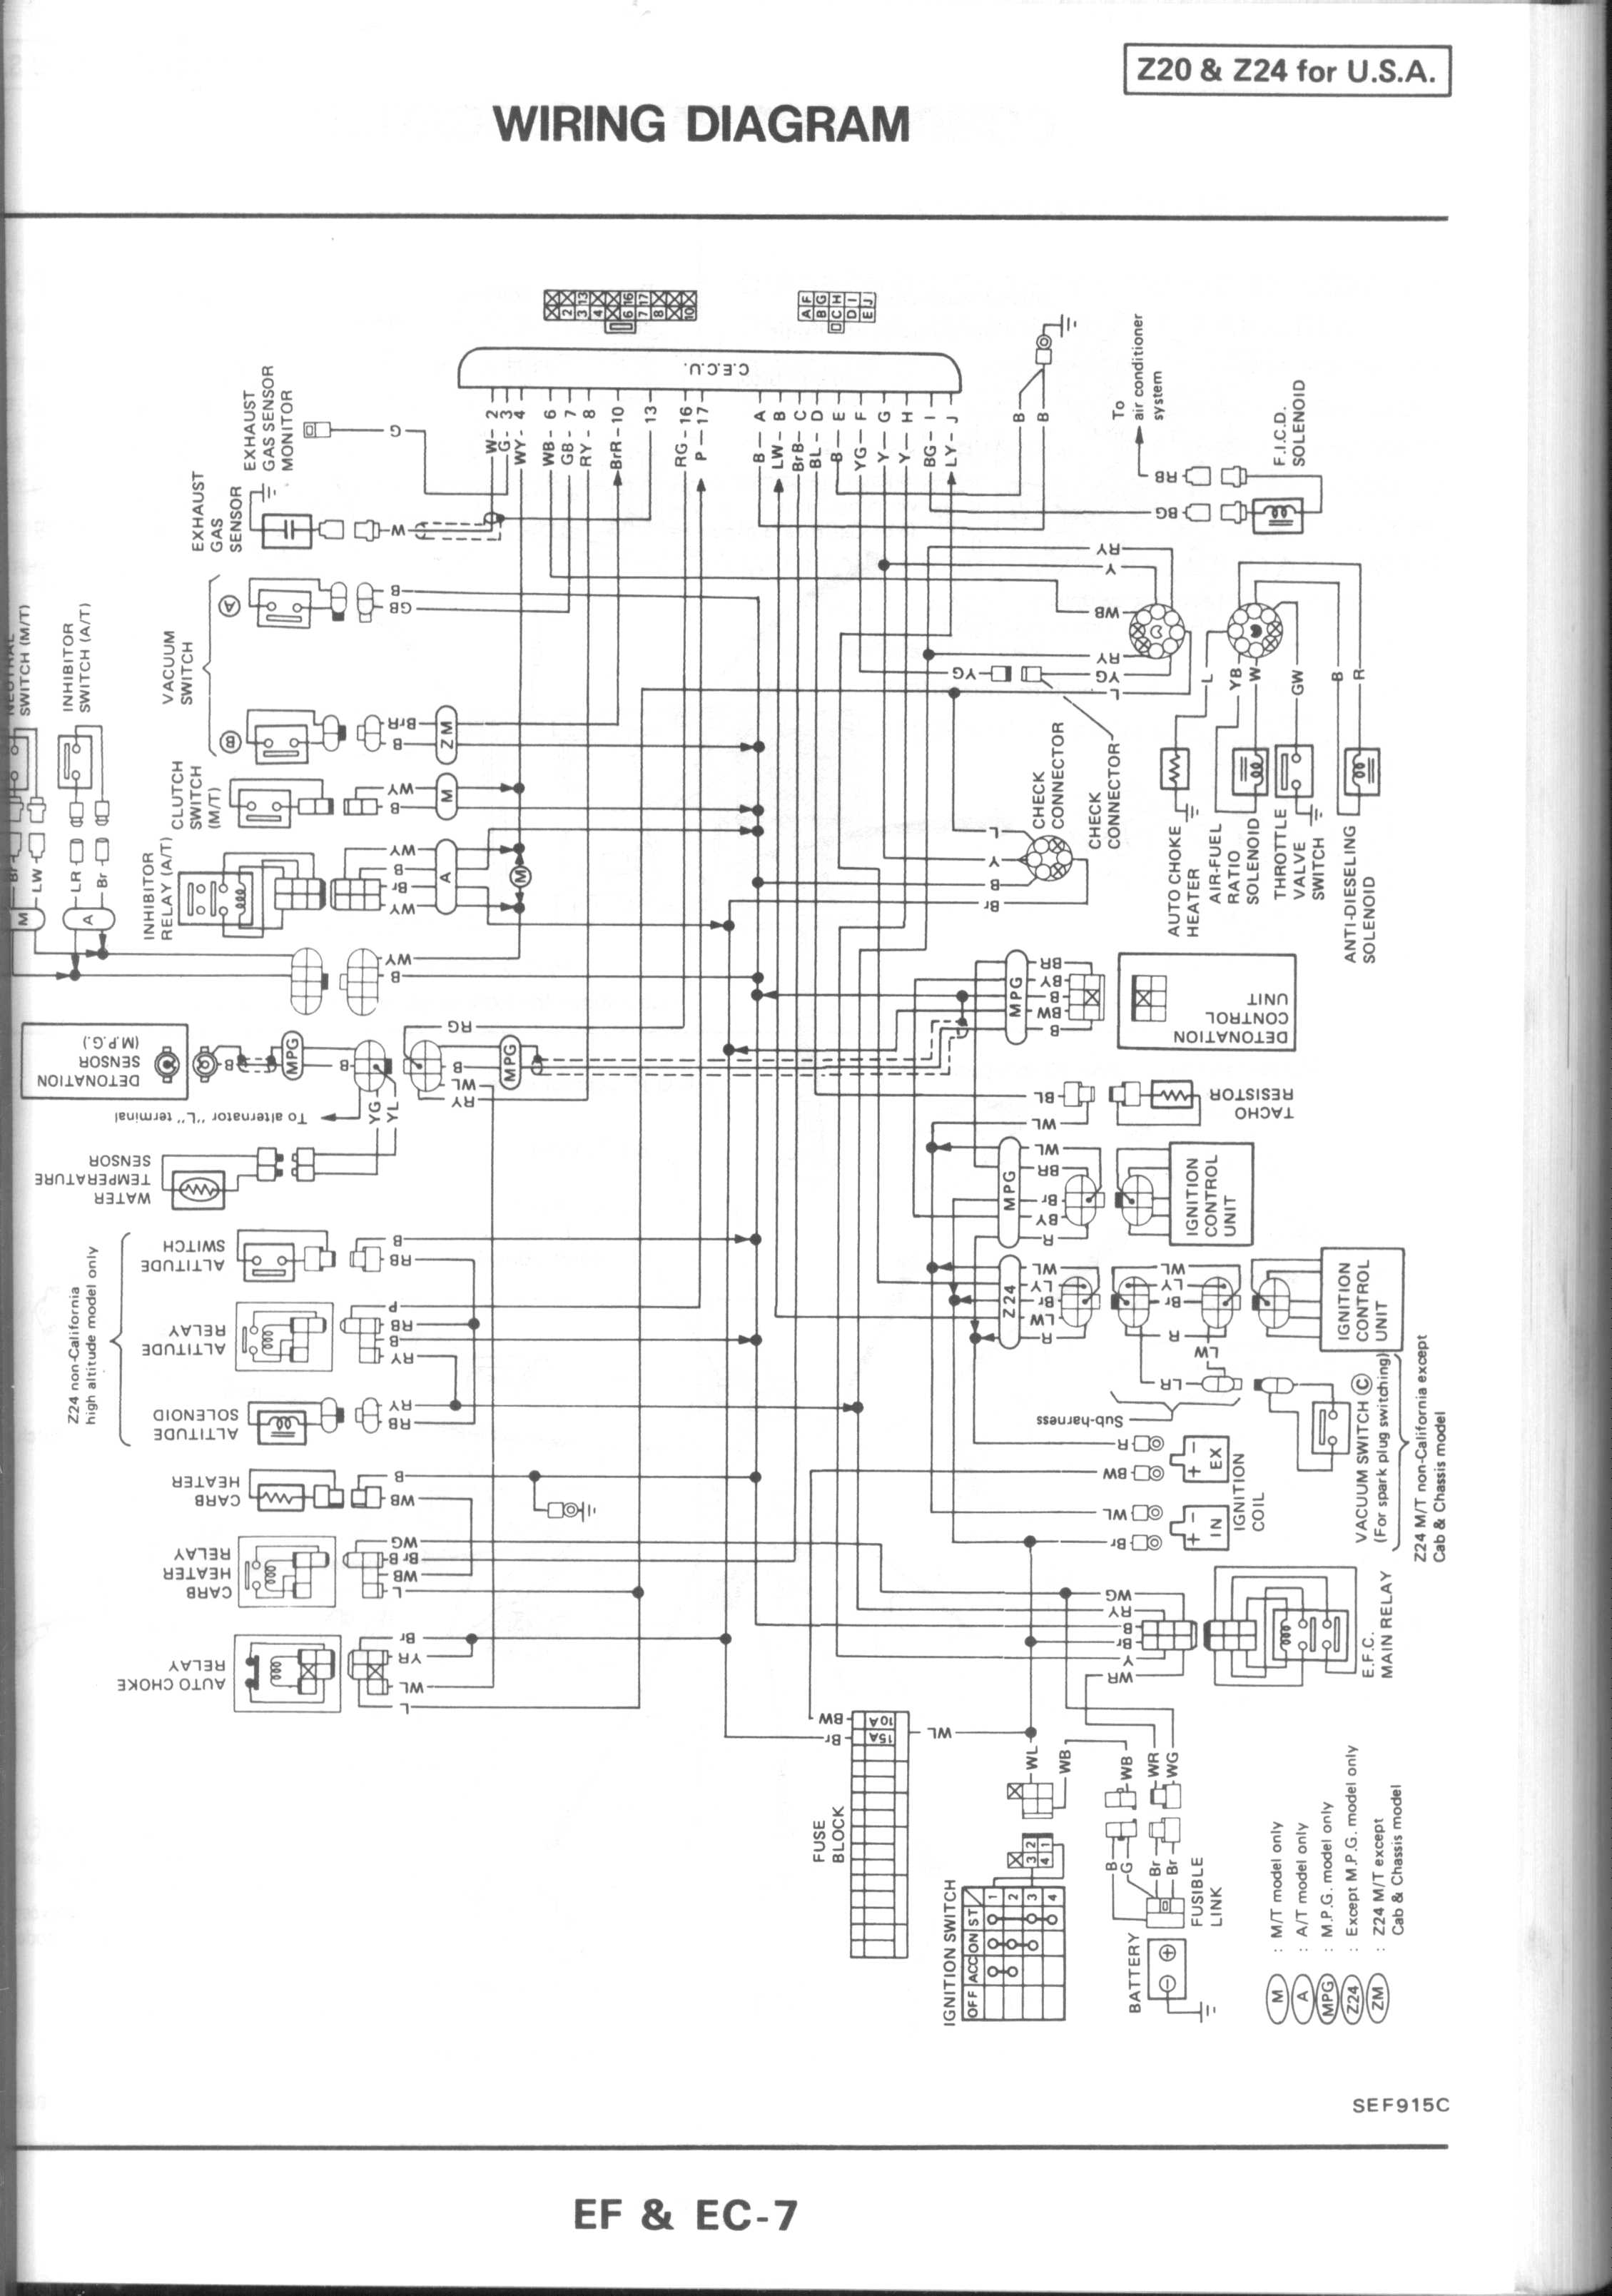 nissan d radio wiring diagram wiring diagrams and schematics nissan d21 wiring diagram diagrams and schematics